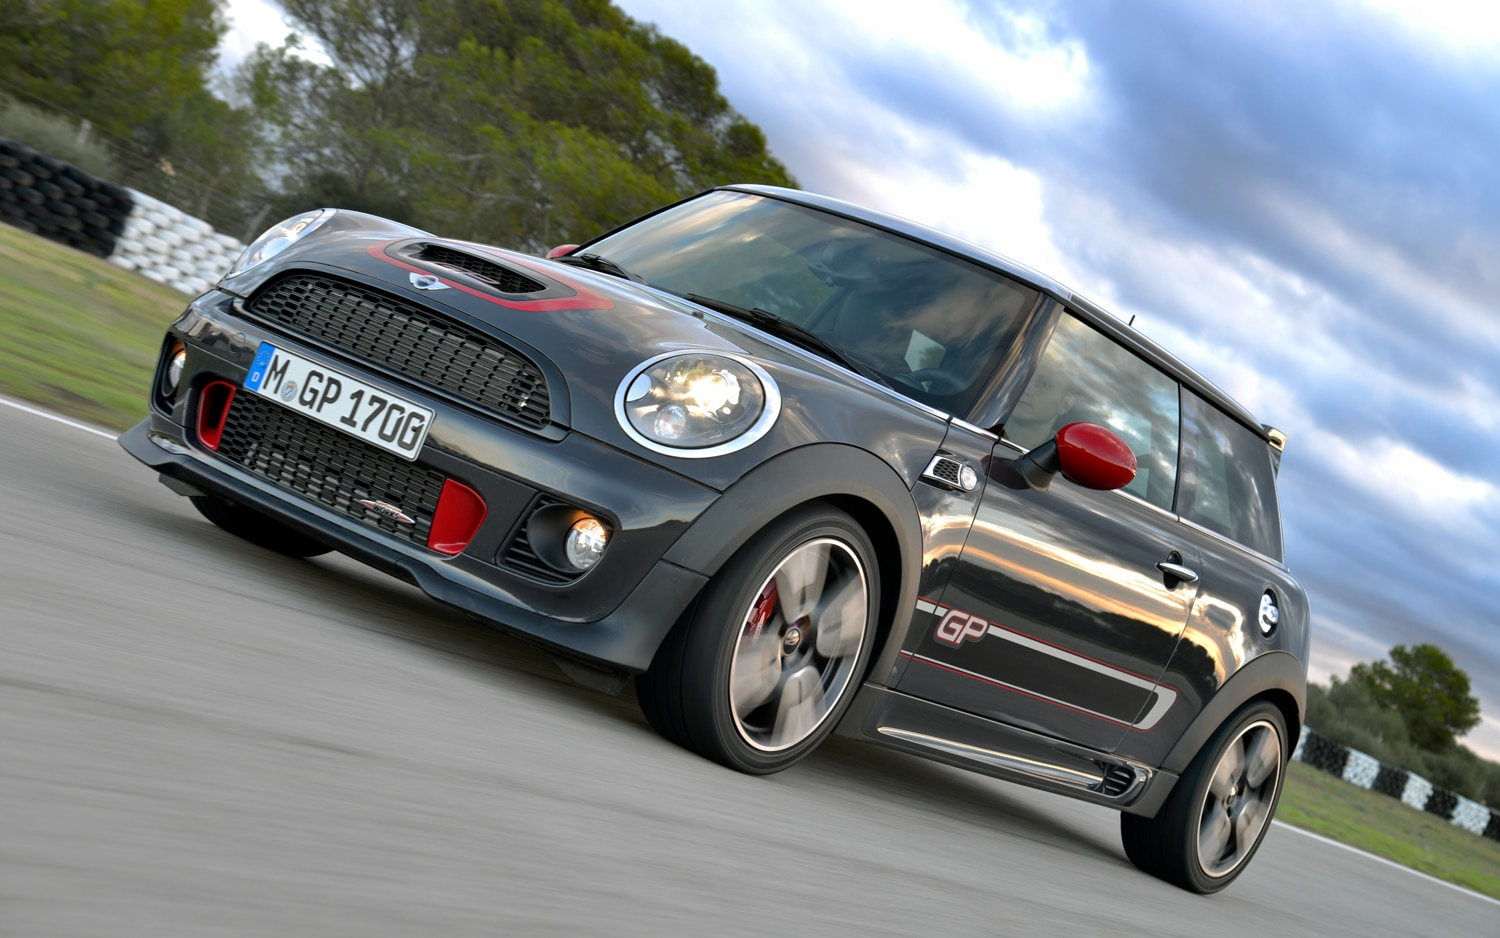 2013 Mini John Cooper Works GP Front Left Side View1